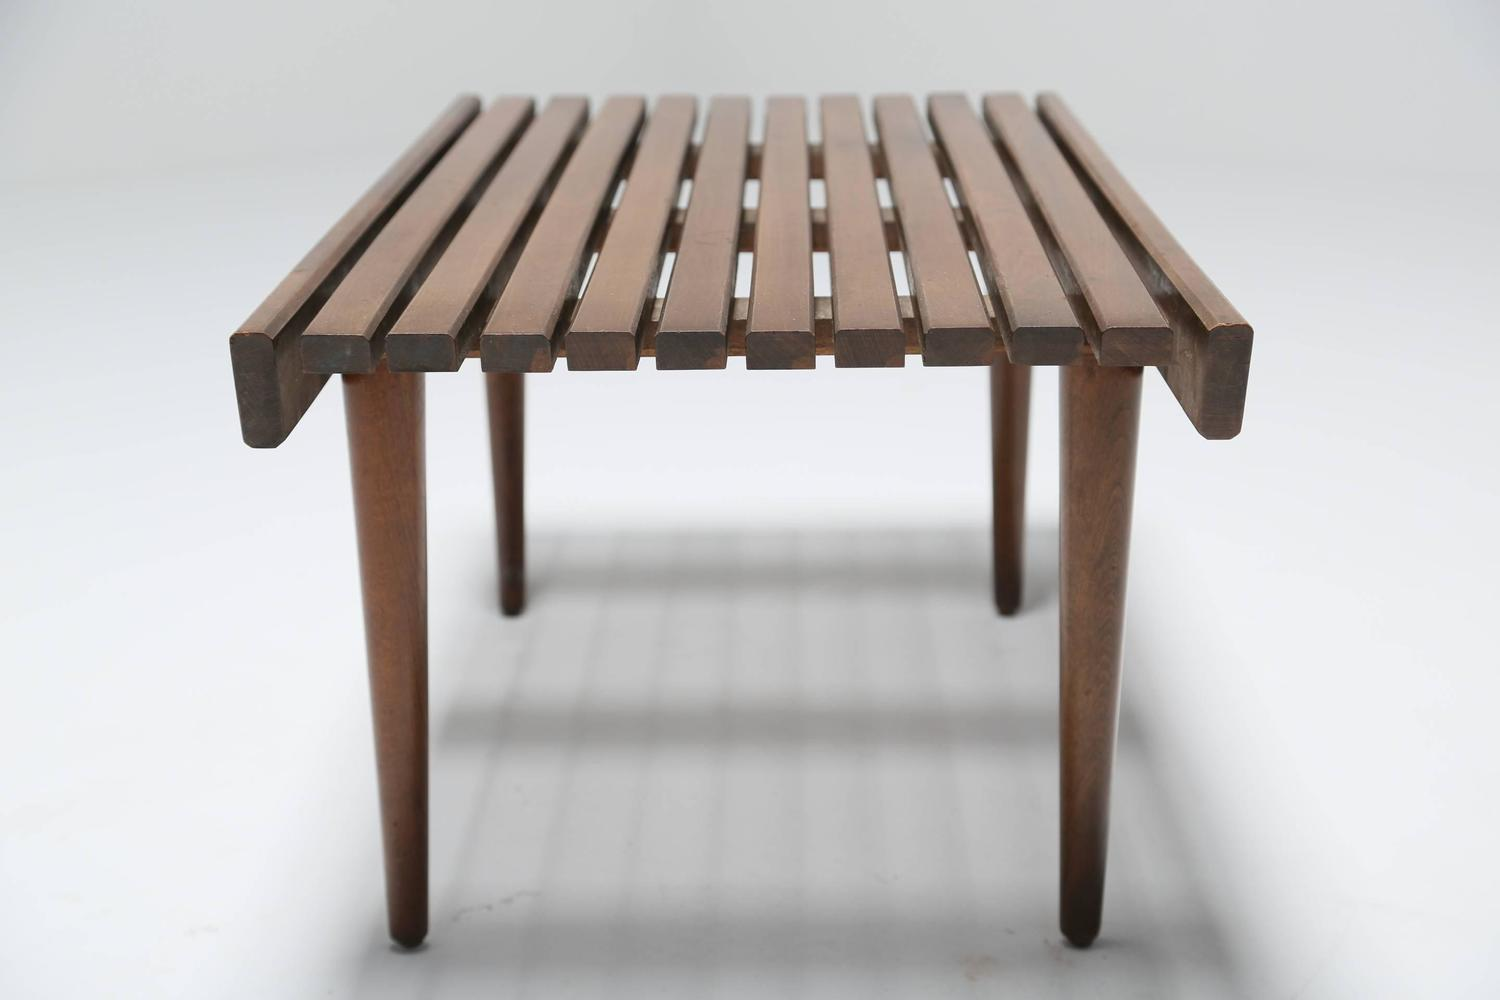 Small Wooden Bench : Small Wooden Slatted Bench, circa 1960 at 1stdibs